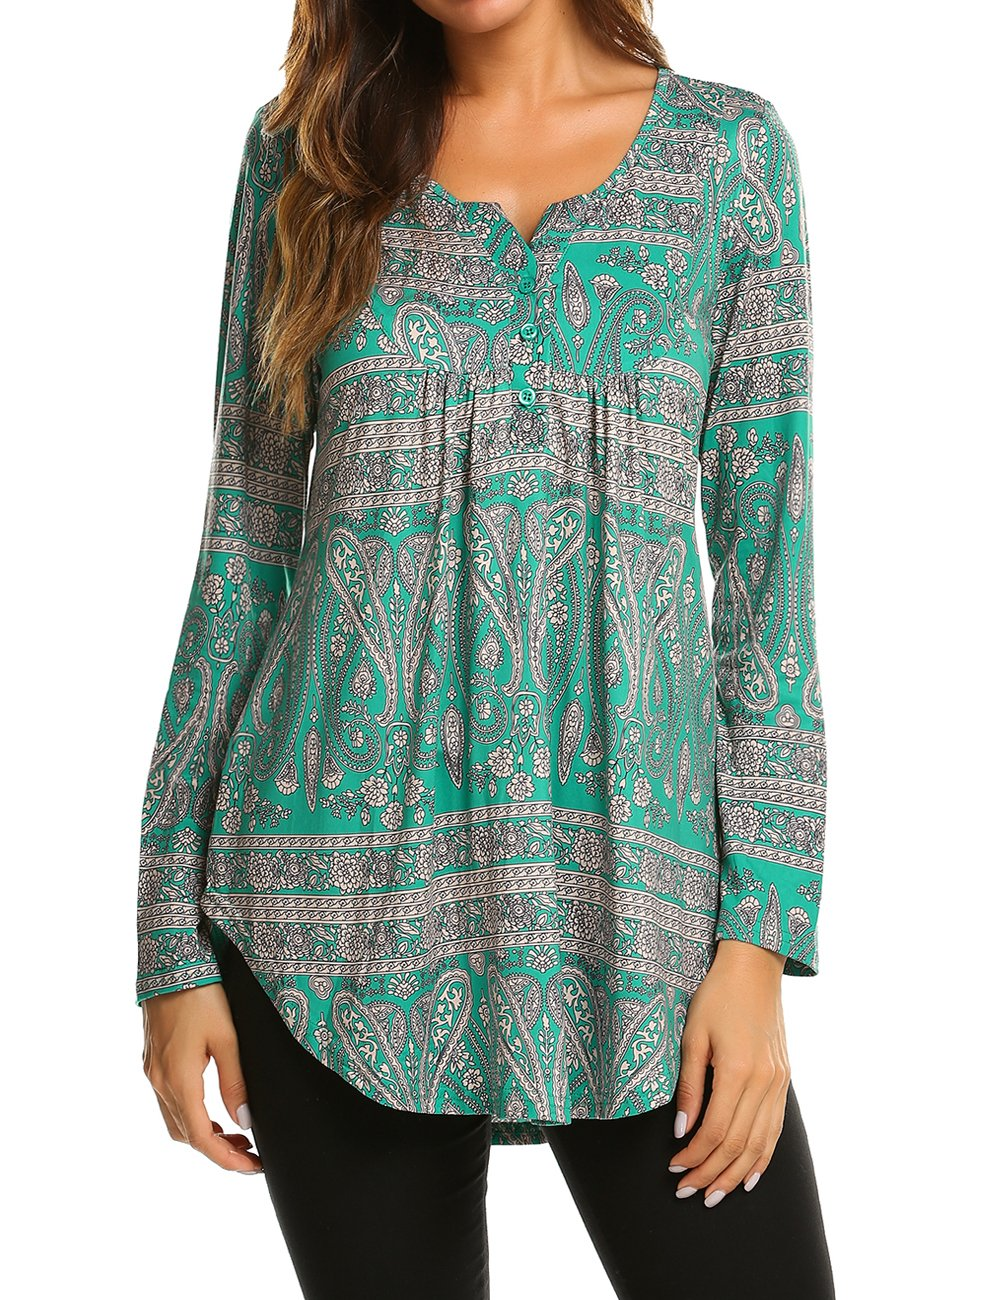 24bdc7c0e6dcc8 Women s Paisley Printed Long Sleeve Henley V Neck Pleated Casual Flare  Tunic Blouse Shirt product image